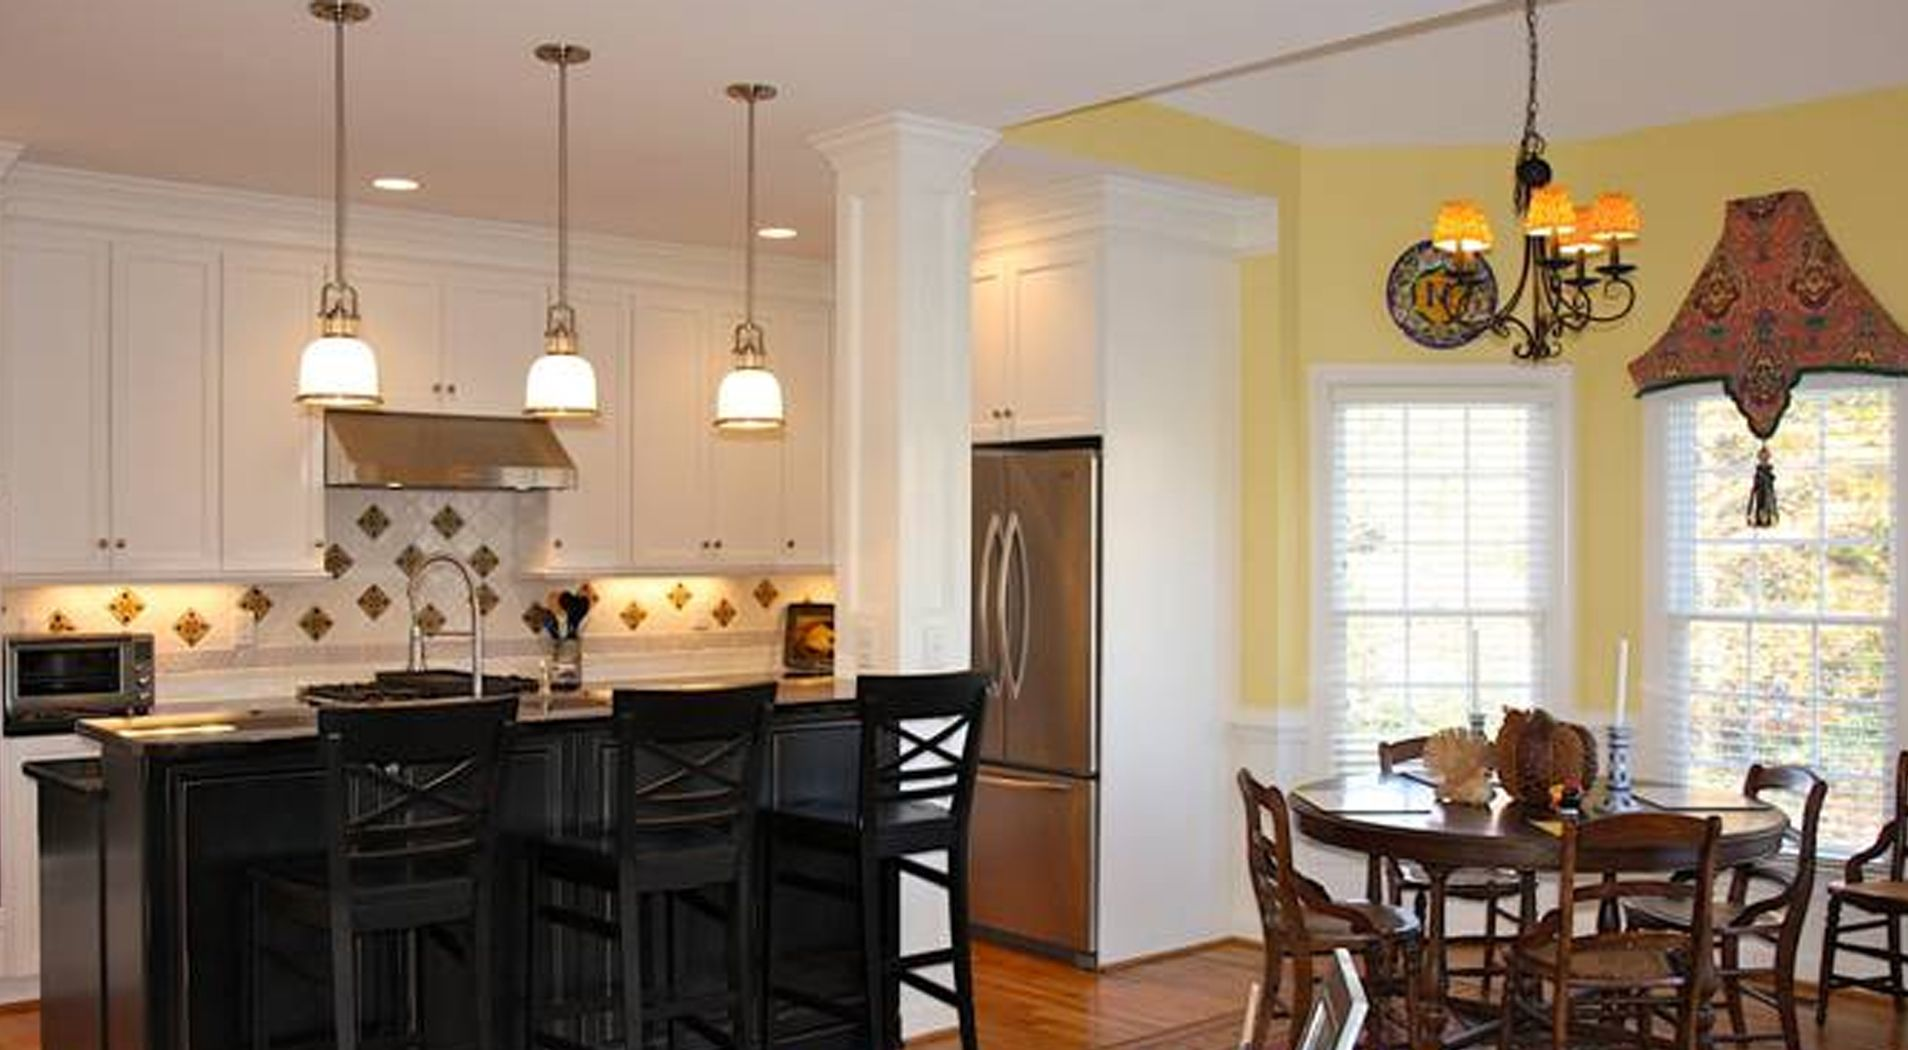 2011 Showcase of Remodeled Homes entry - ICON Custom Builders